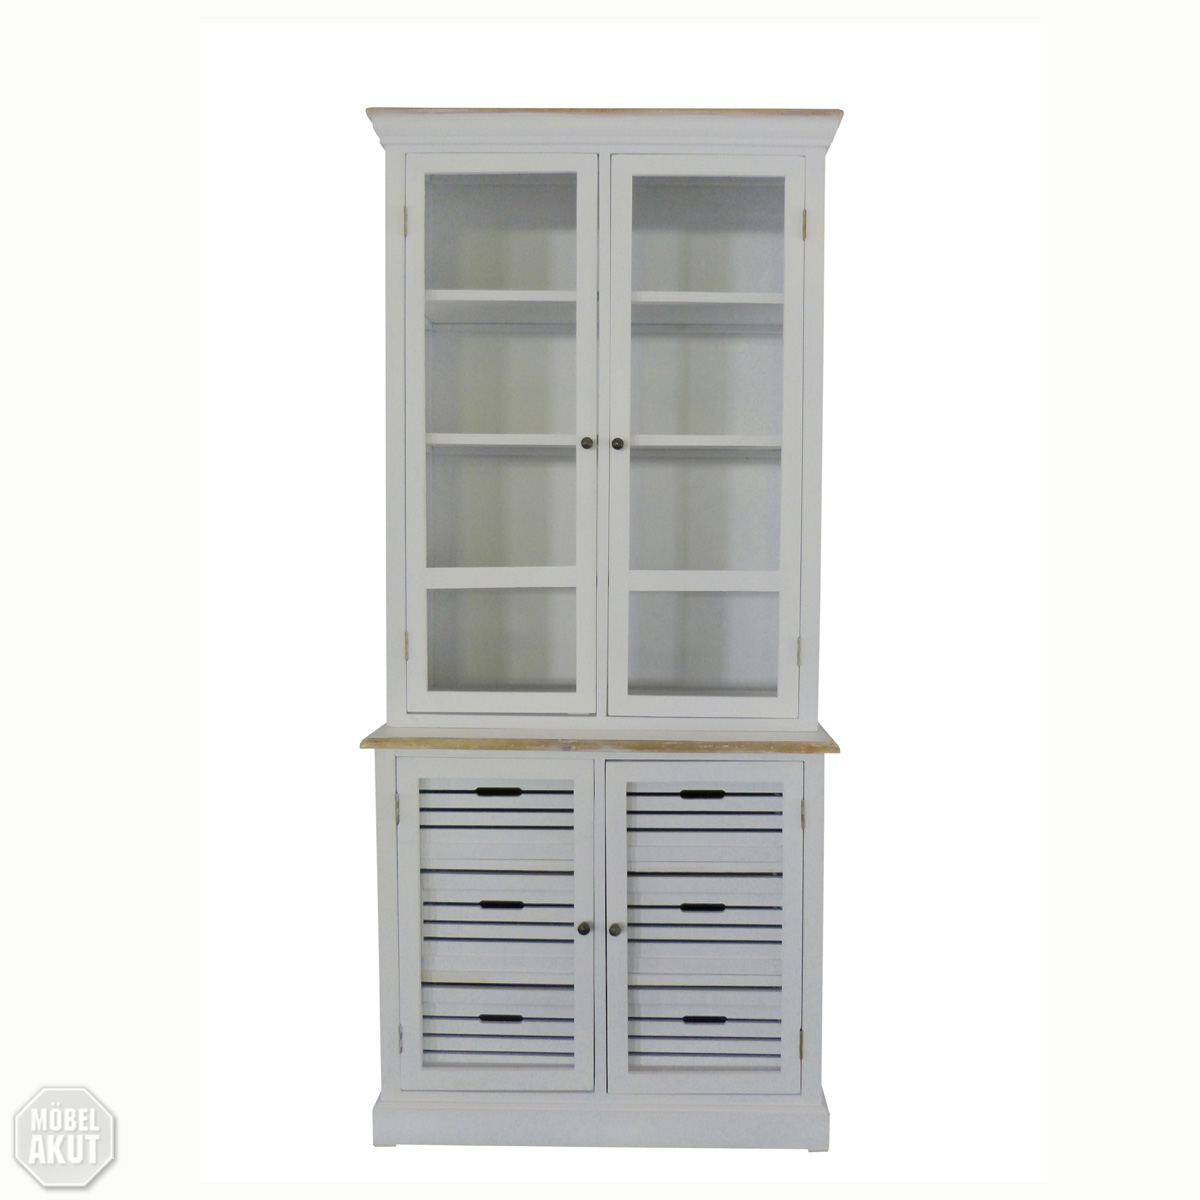 vitrine paris schrank in paulownia holz weiss vintage look landhaus ebay. Black Bedroom Furniture Sets. Home Design Ideas